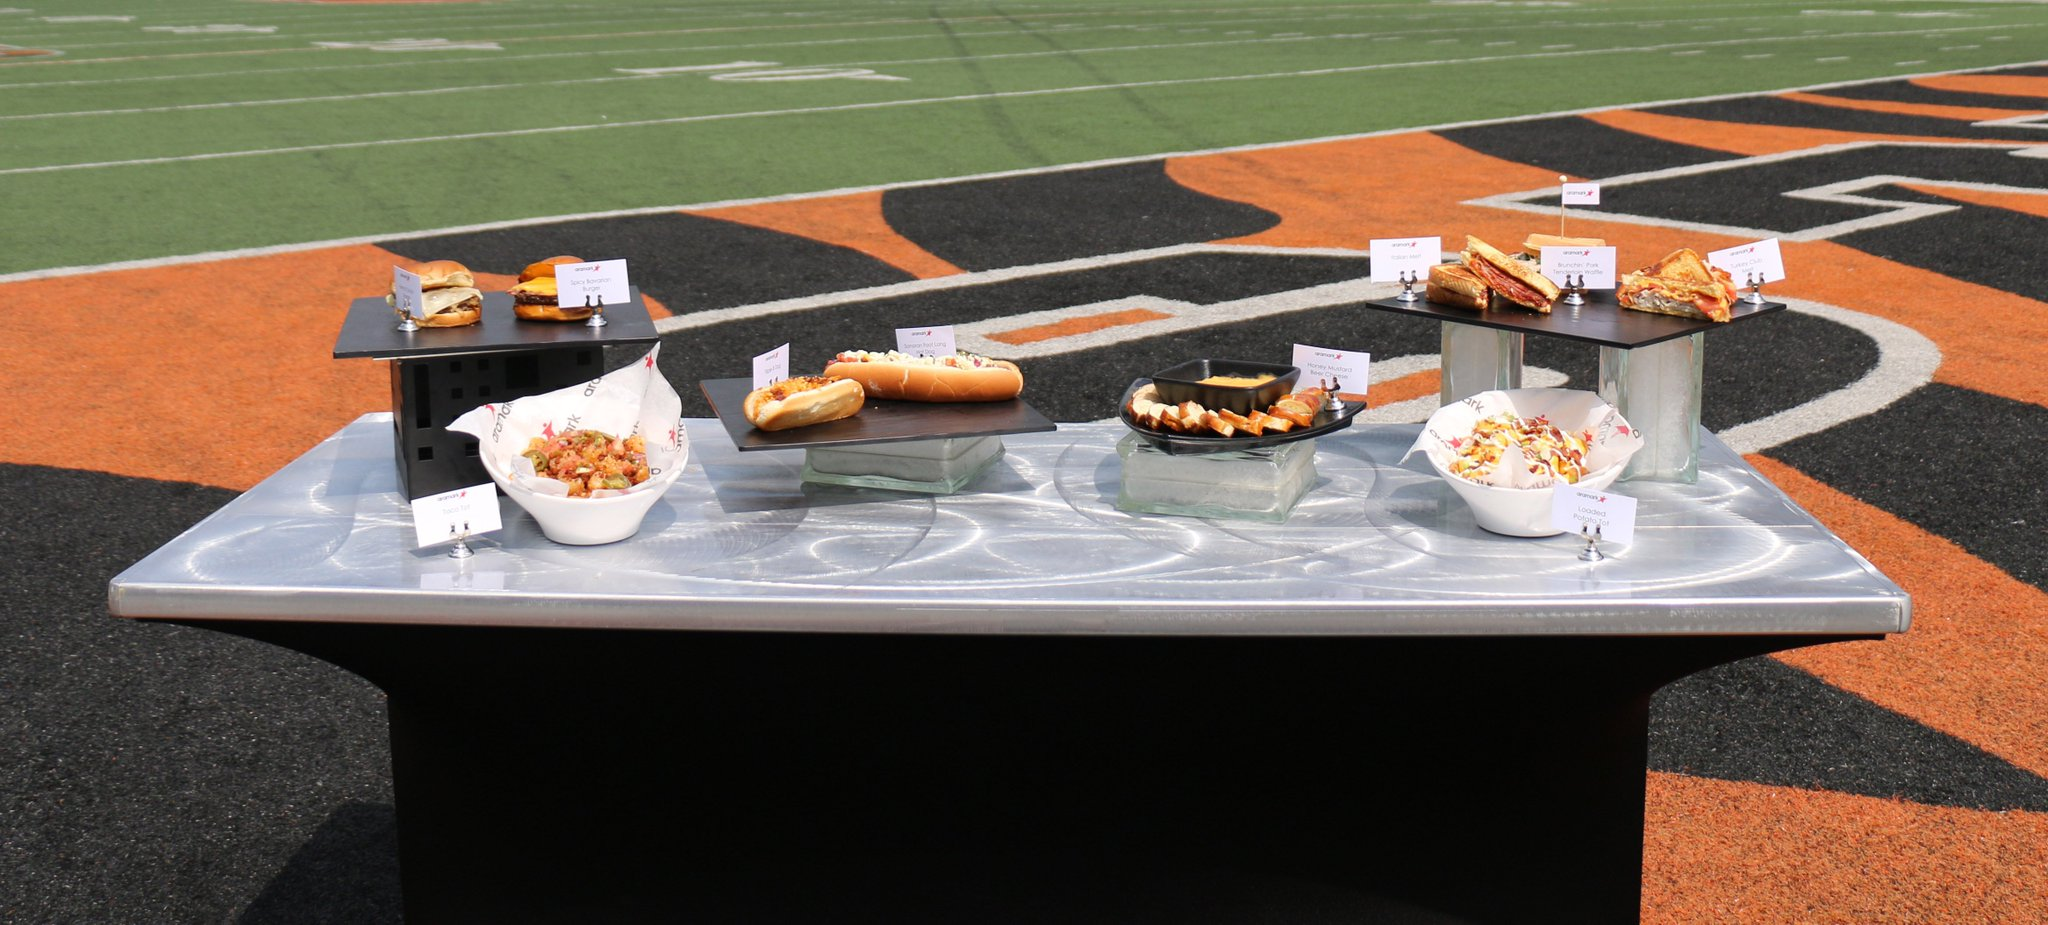 You're going to want to try the new food at Paul Brown Stadium this season. #Bengals50   ��: https://t.co/Ej2EXWgXqo https://t.co/5wOTSzgapB